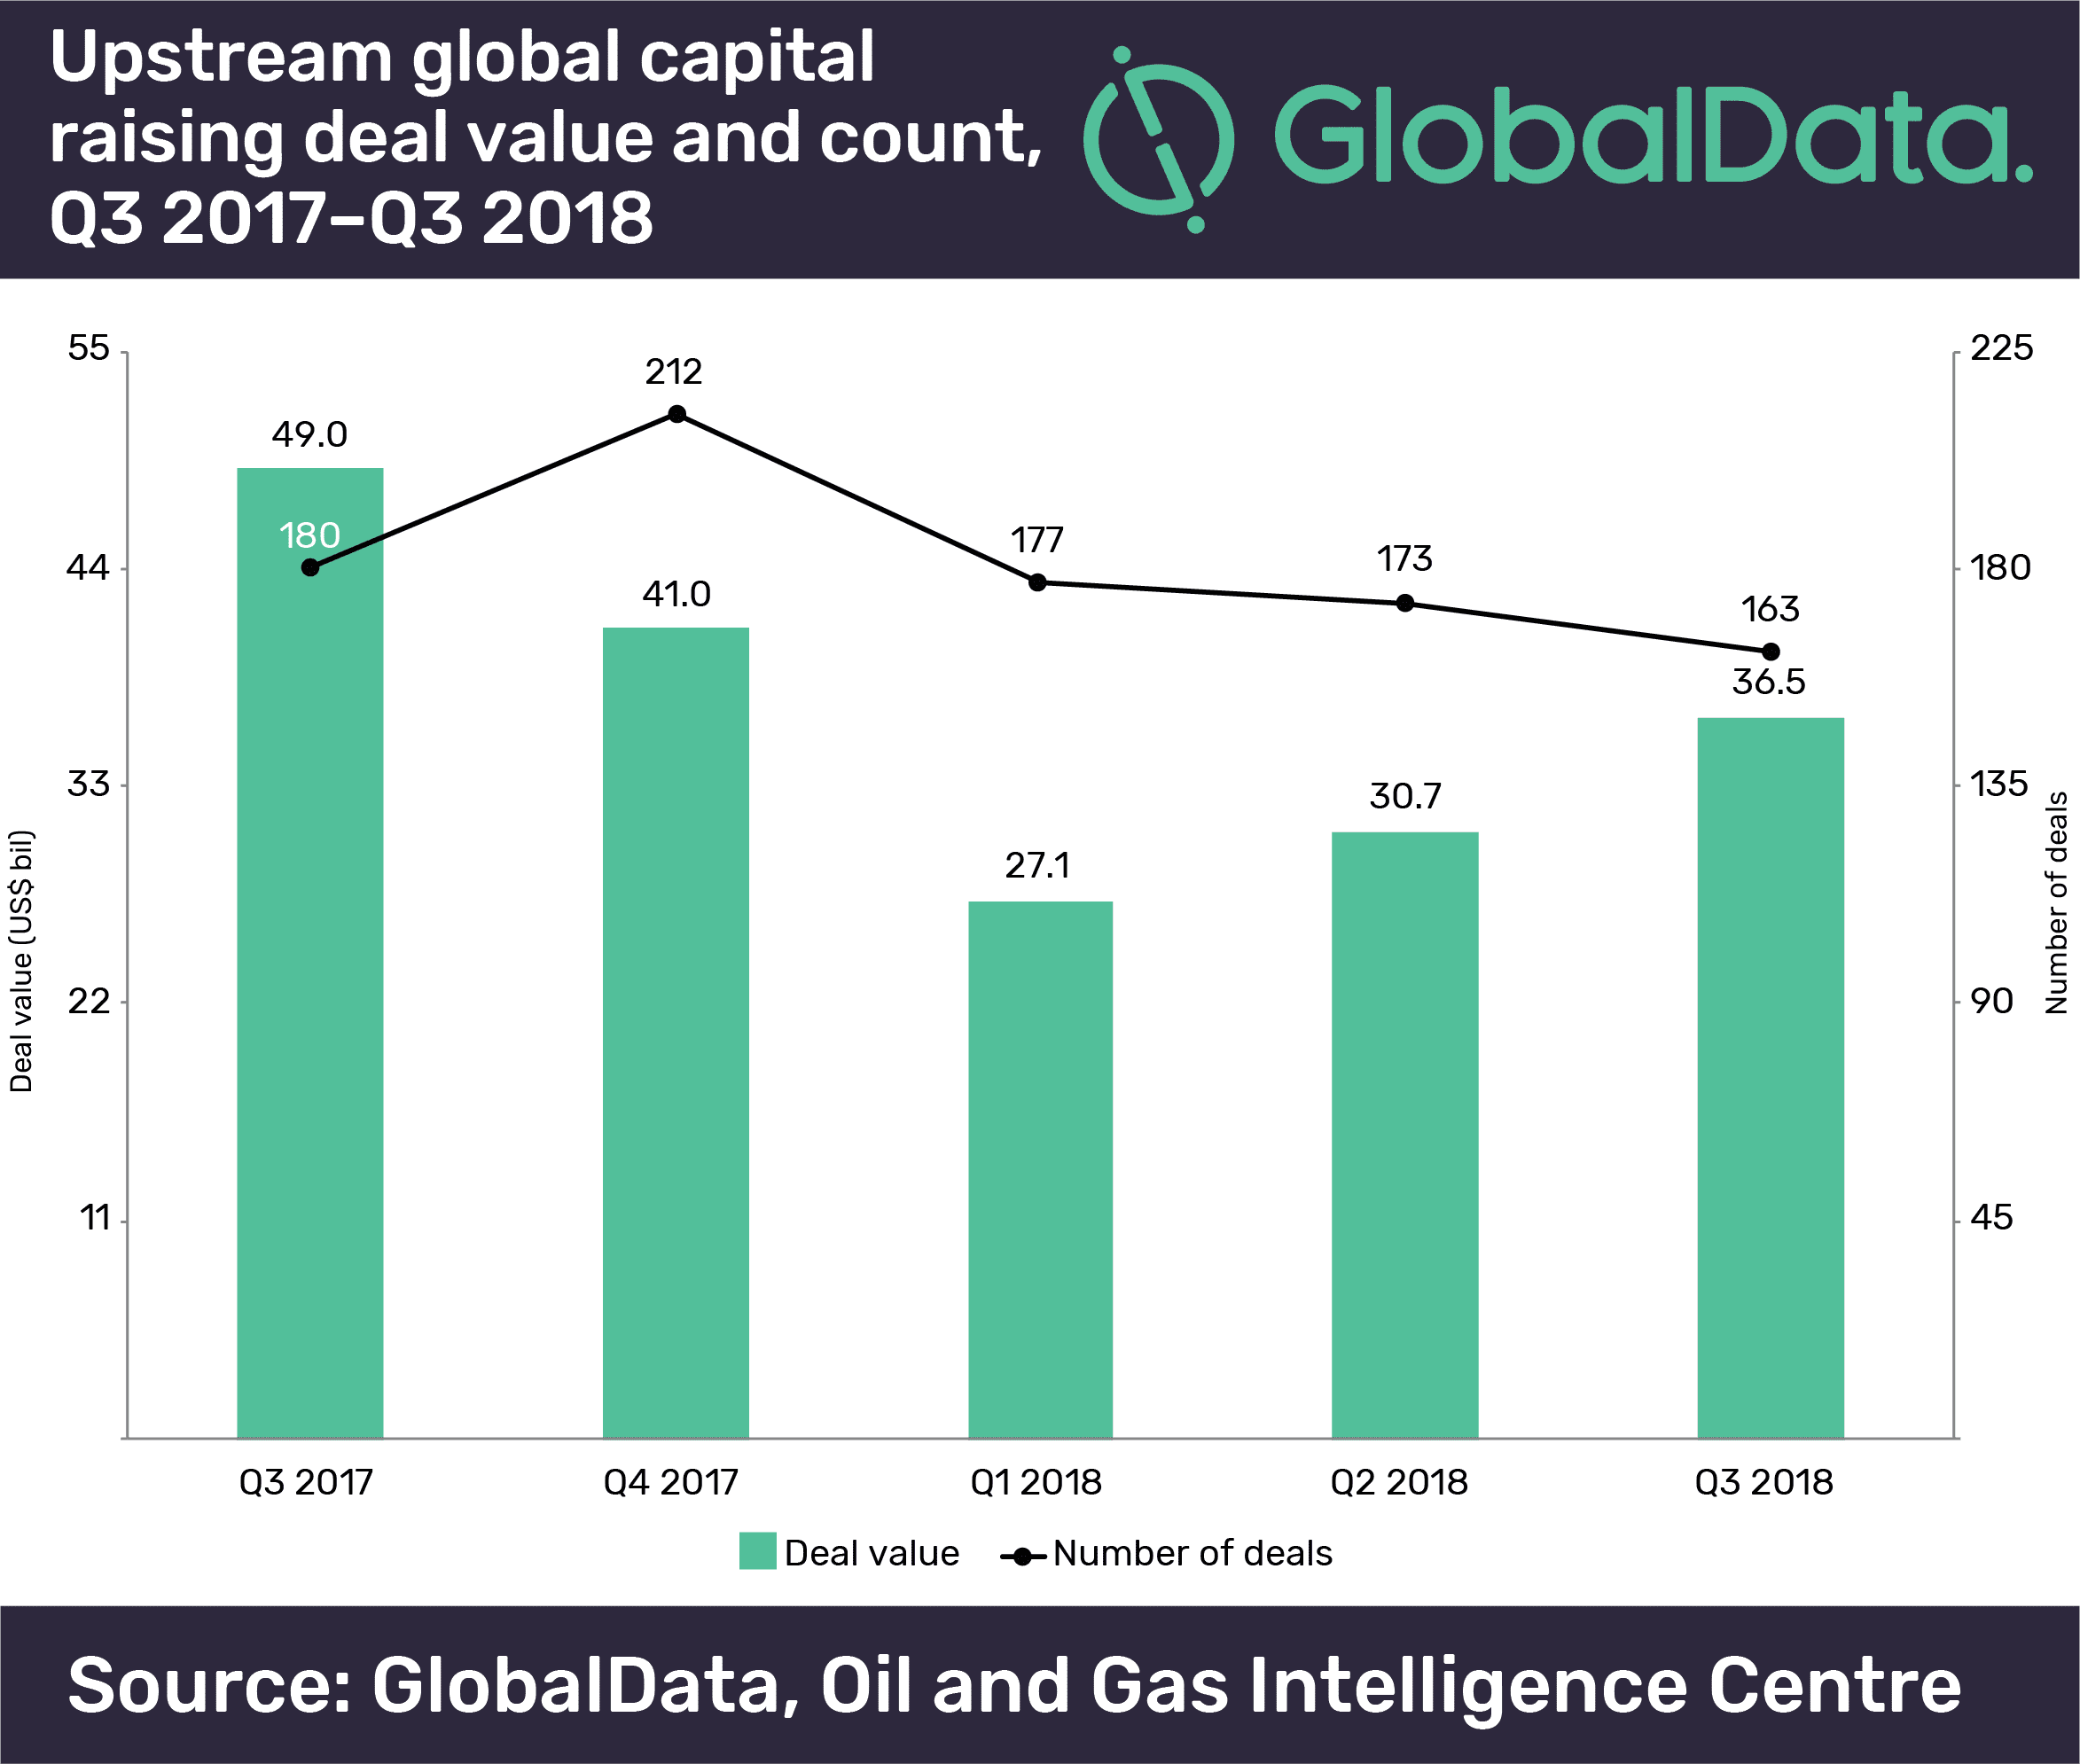 Upstream oil and gas M&A and capital raising values totalled $80.9bn in Q3 2018